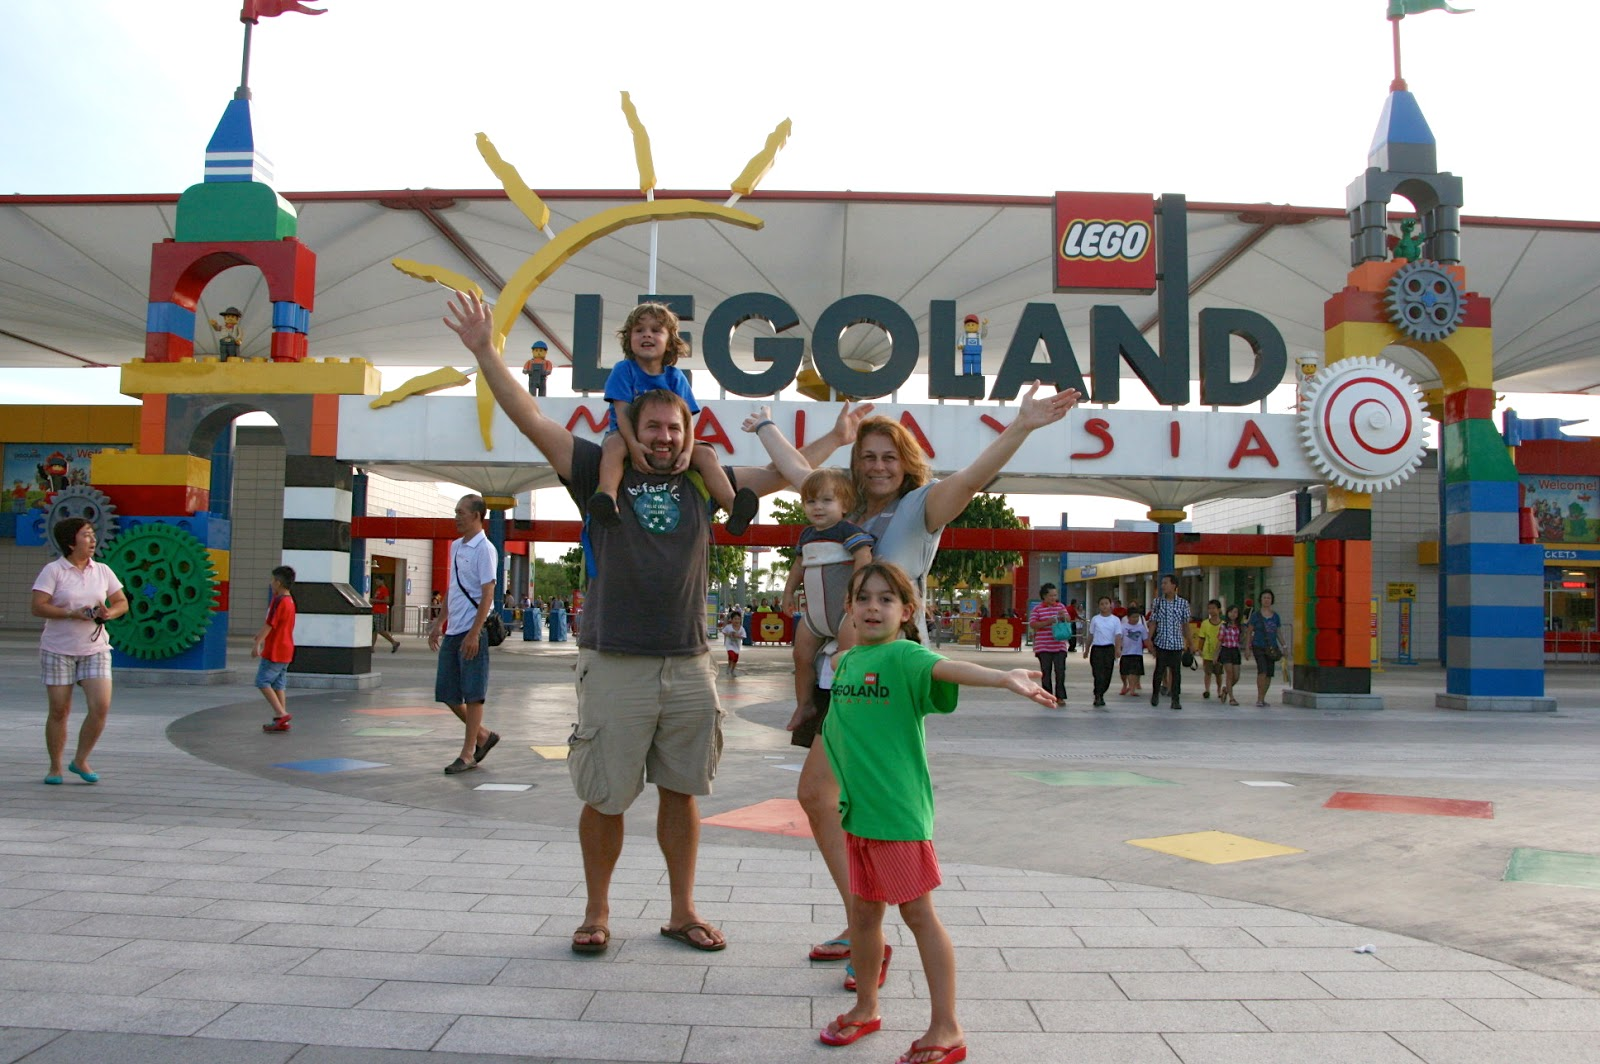 5 Around The World Family Travels With Kids Legoland Tiket Johor Bahru Malaysia Theme Park Dan Water Is Awesome And They Now Have A Hotel Too